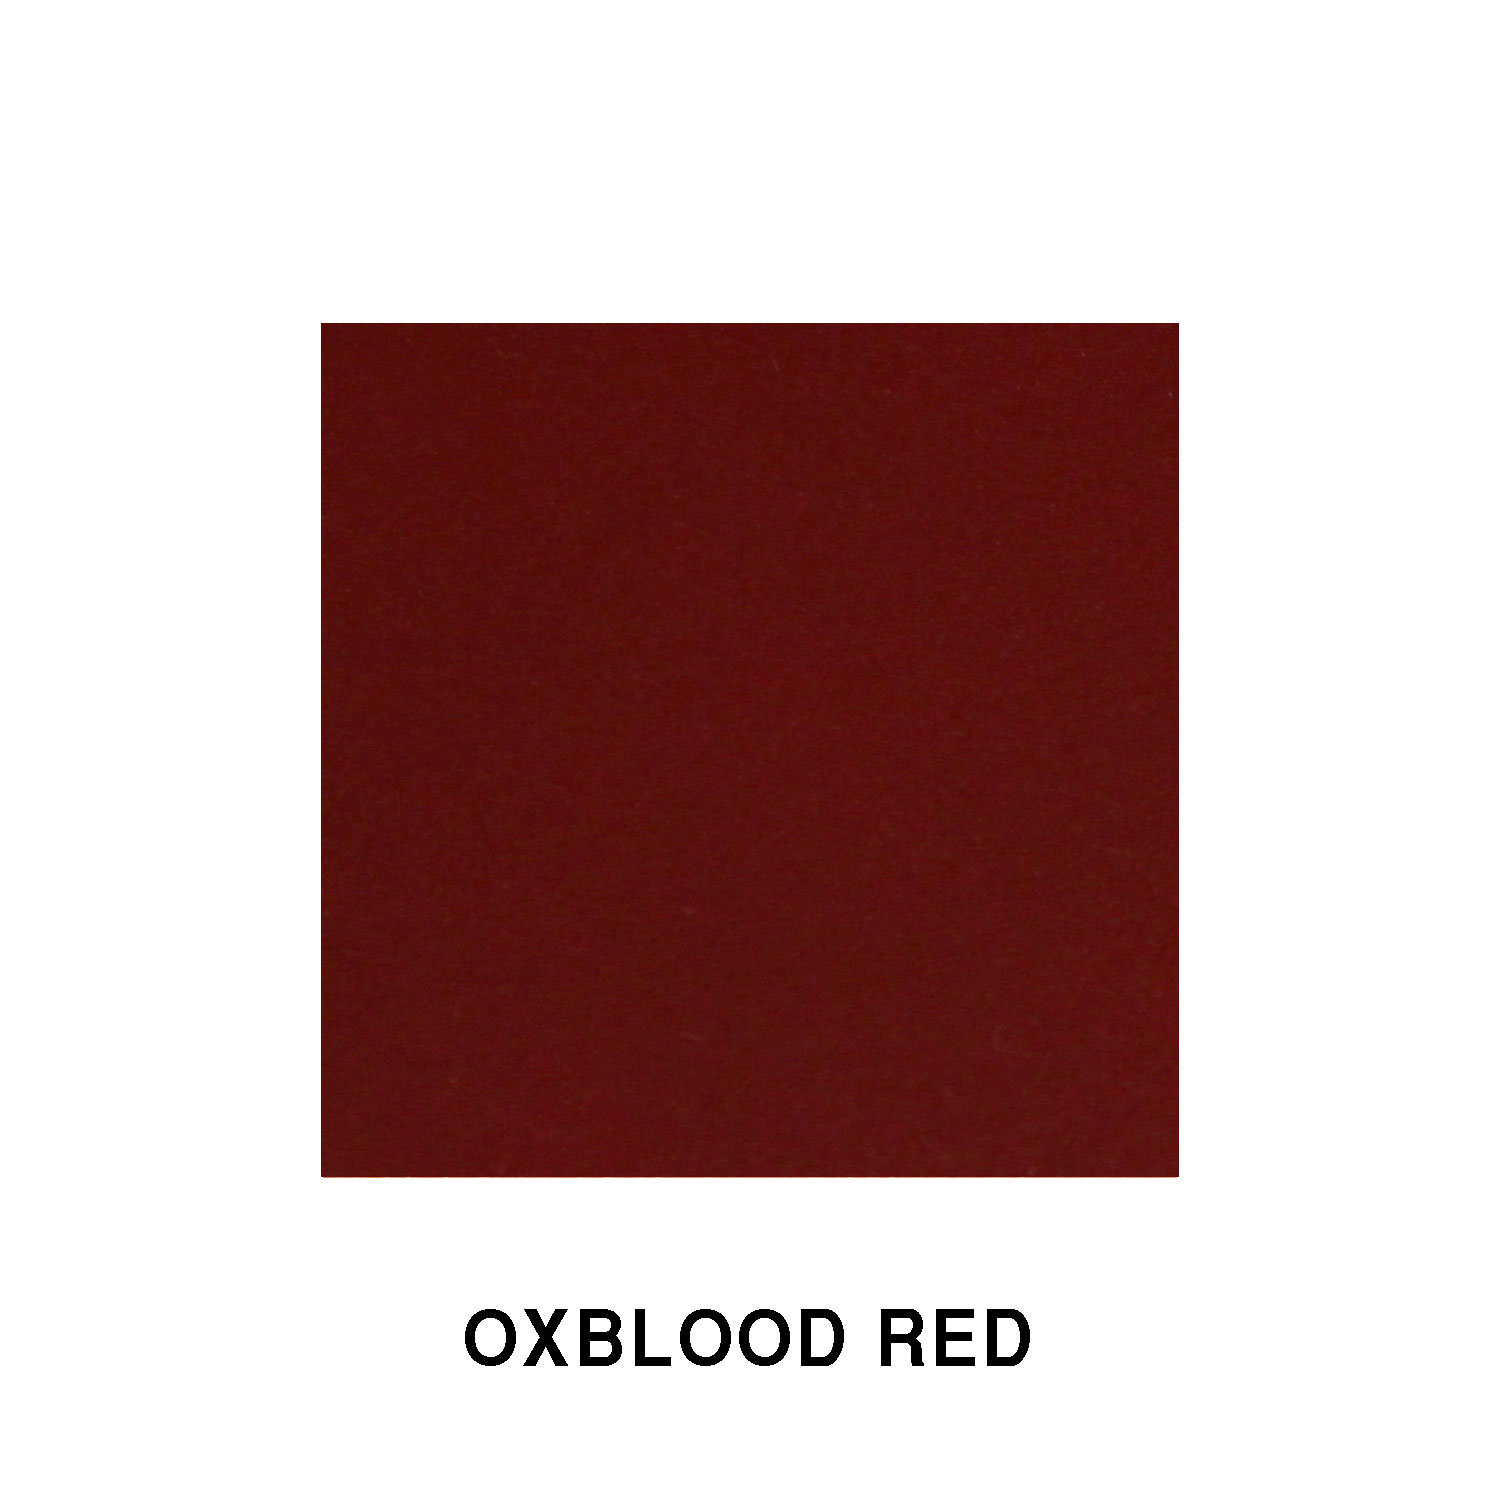 Oxblood Red Fiberglass Finish